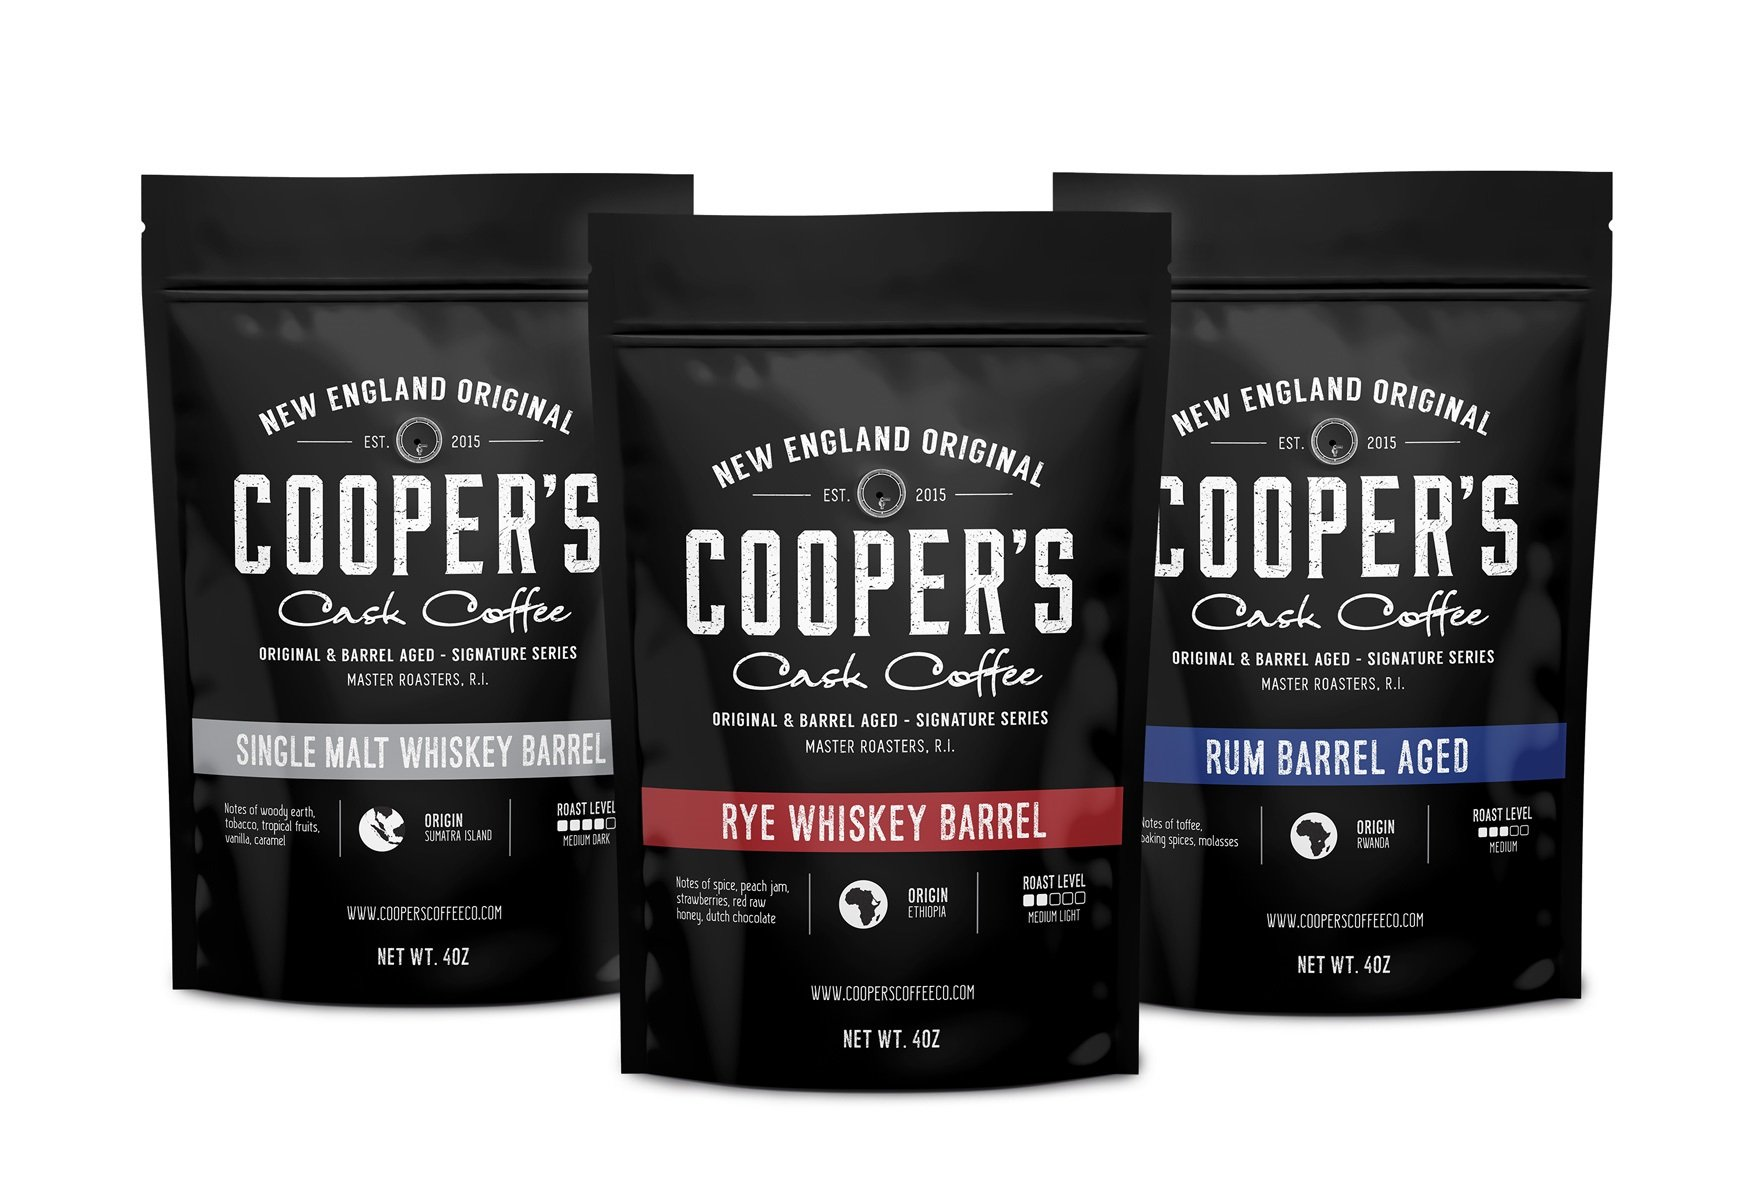 Whiskey & Rum Barrel Aged Coffee Whole Bean Box Set, 3 Bags Gift Box Set, Coffee Sampler Set - Single Origin Sumatra Whiskey, Ethiopian Rye, Rwanda Rum Roasted Coffee Beans, 100% Guaranteed by Cooper's Cask Coffee